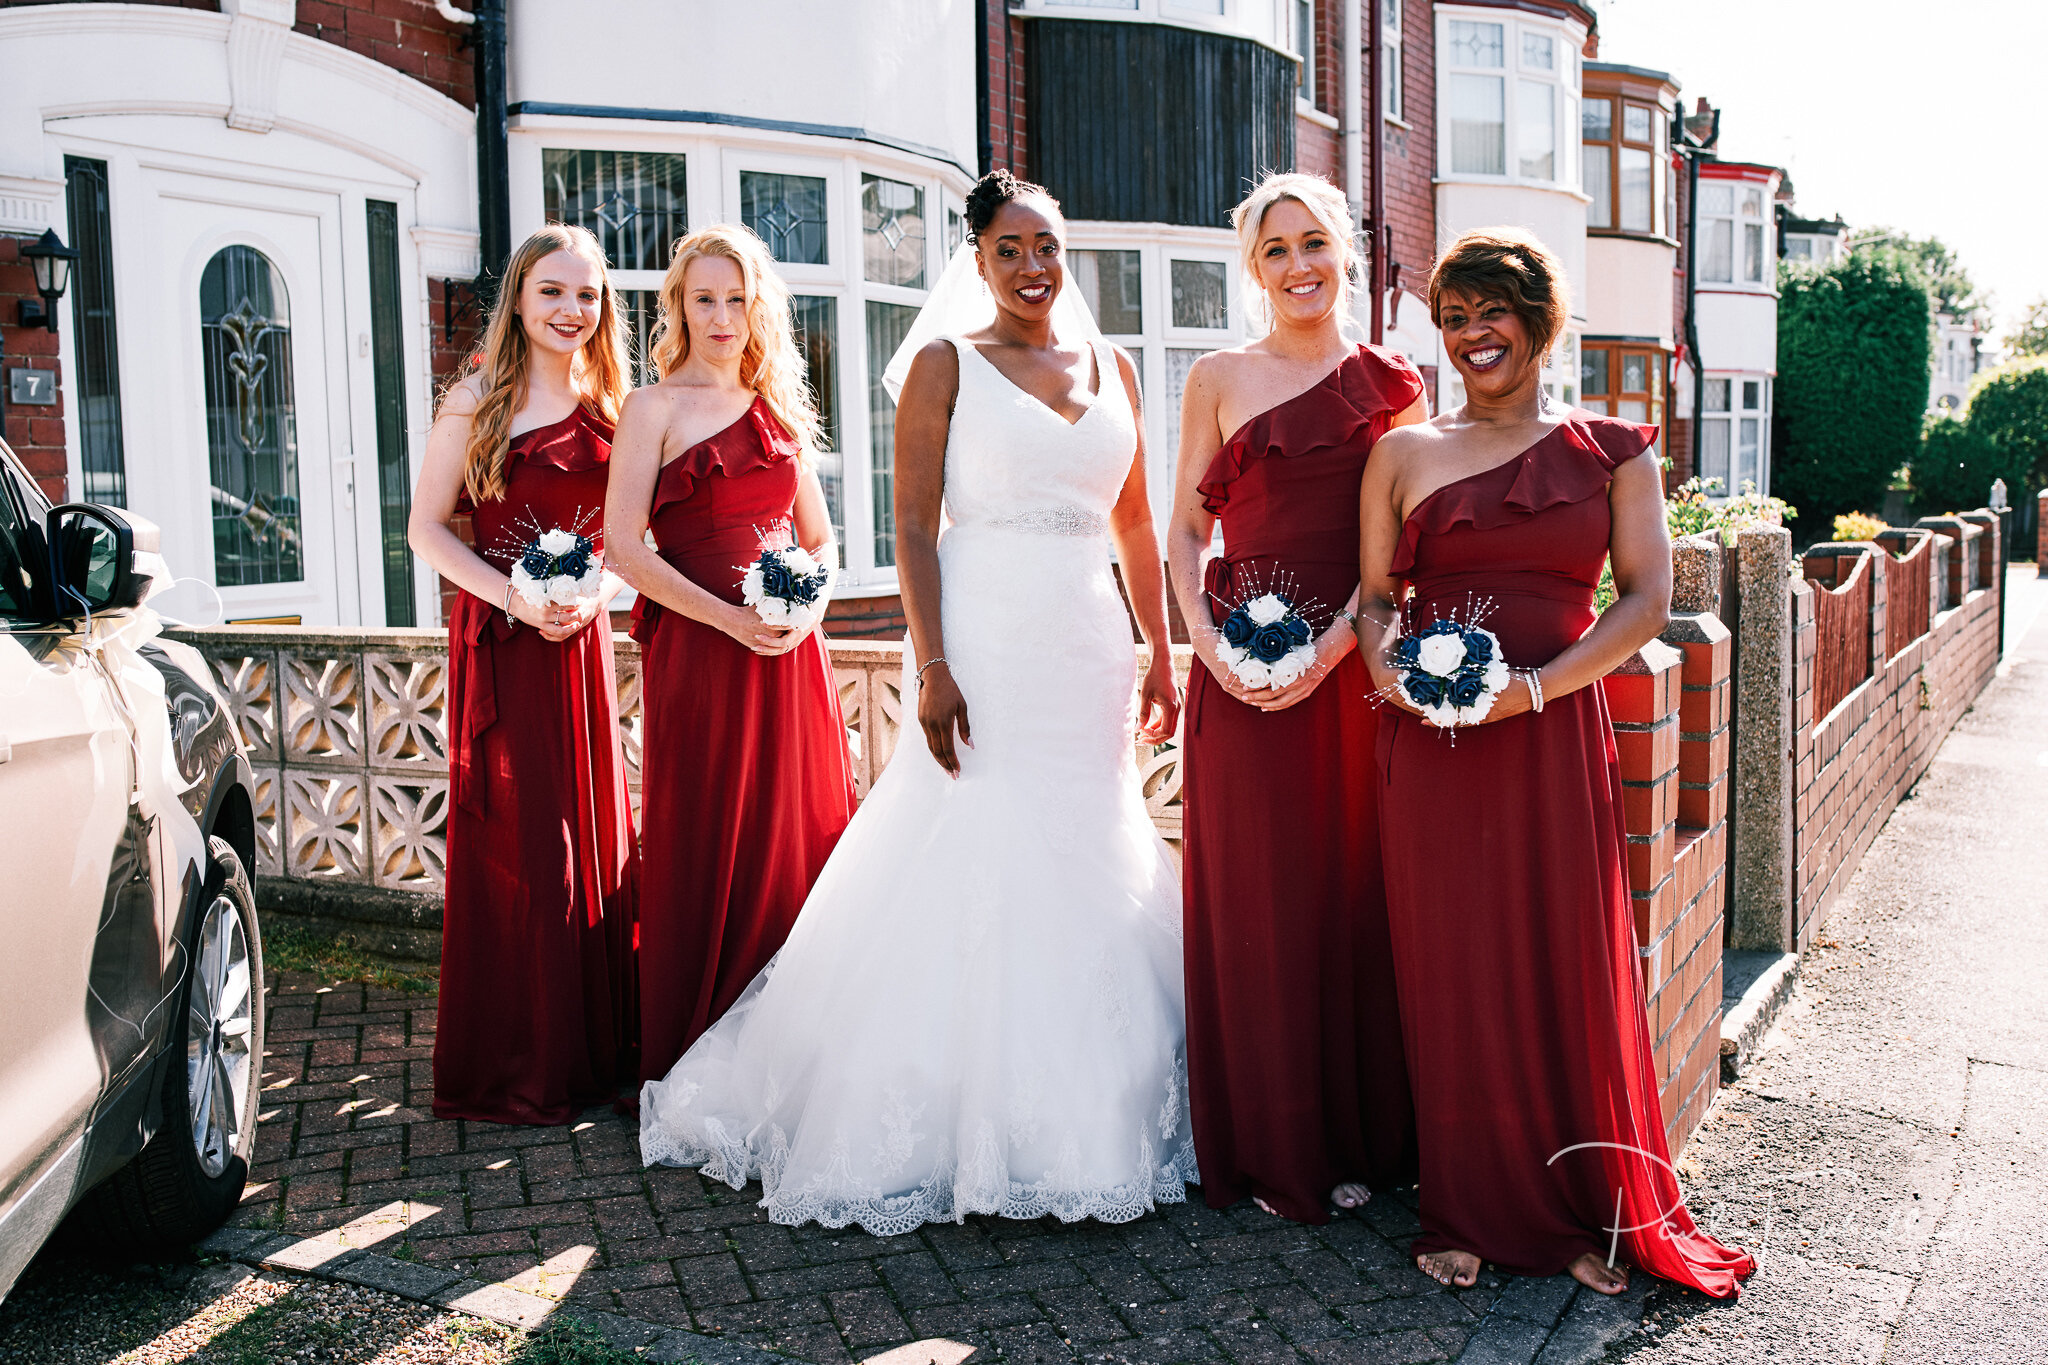 Bride and bridesmaids setting off for the wedding. Wedding Photographer Hull